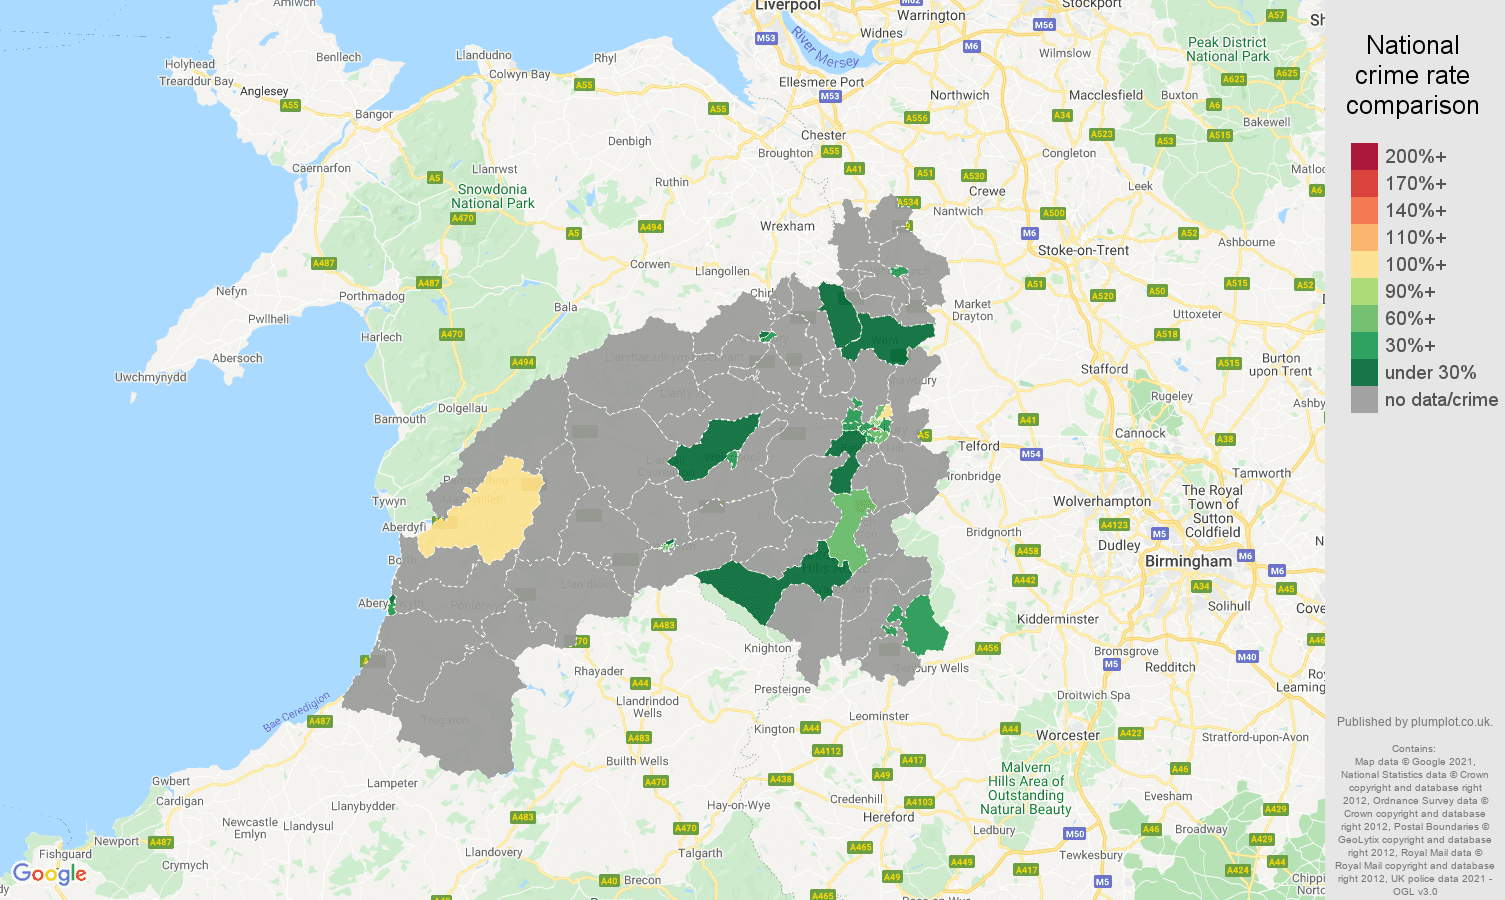 Shrewsbury bicycle theft crime rate comparison map